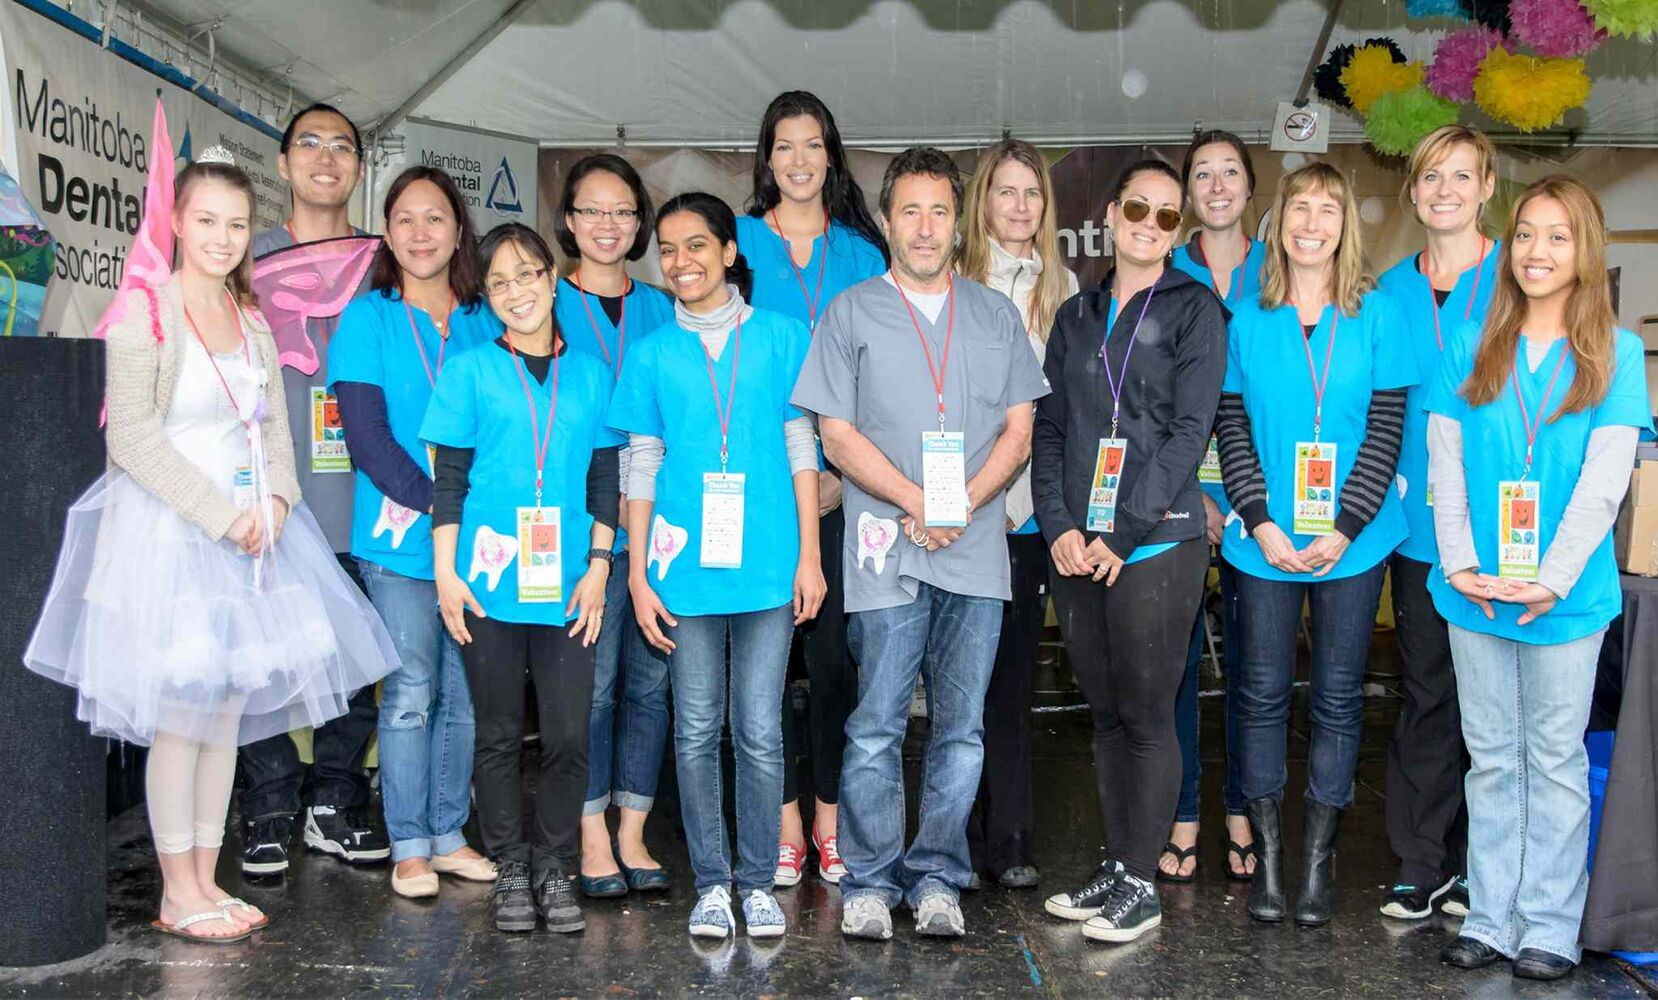 The Manitoba Dental Association (MDA) was out in full force at the Winnipeg International Children's Festival at The Forks on June 6, 2015. Volunteer dentists and dental assistants saw more than 300 children. The MDA has been running Tooth Fairy Saturday at the festival since 1996. Pictured, from left, are Alyssa Malenki (Healthy Smile, Happy Child program), Brandon Wang, Alhena Root, Dr. Tricia Magsino-Barnabe, Dr. Susan Tsang, Trisha Mambalum-Mahendra, Whitney Taylorson, Dr. Mark Nepon, Sarah Laidlaw, Tammy Hildebrand (director of member and public relations, MDA), Dr. Jacqueline Samborski, Edith Diner, Crystal Sabourin and Christine Mallari.